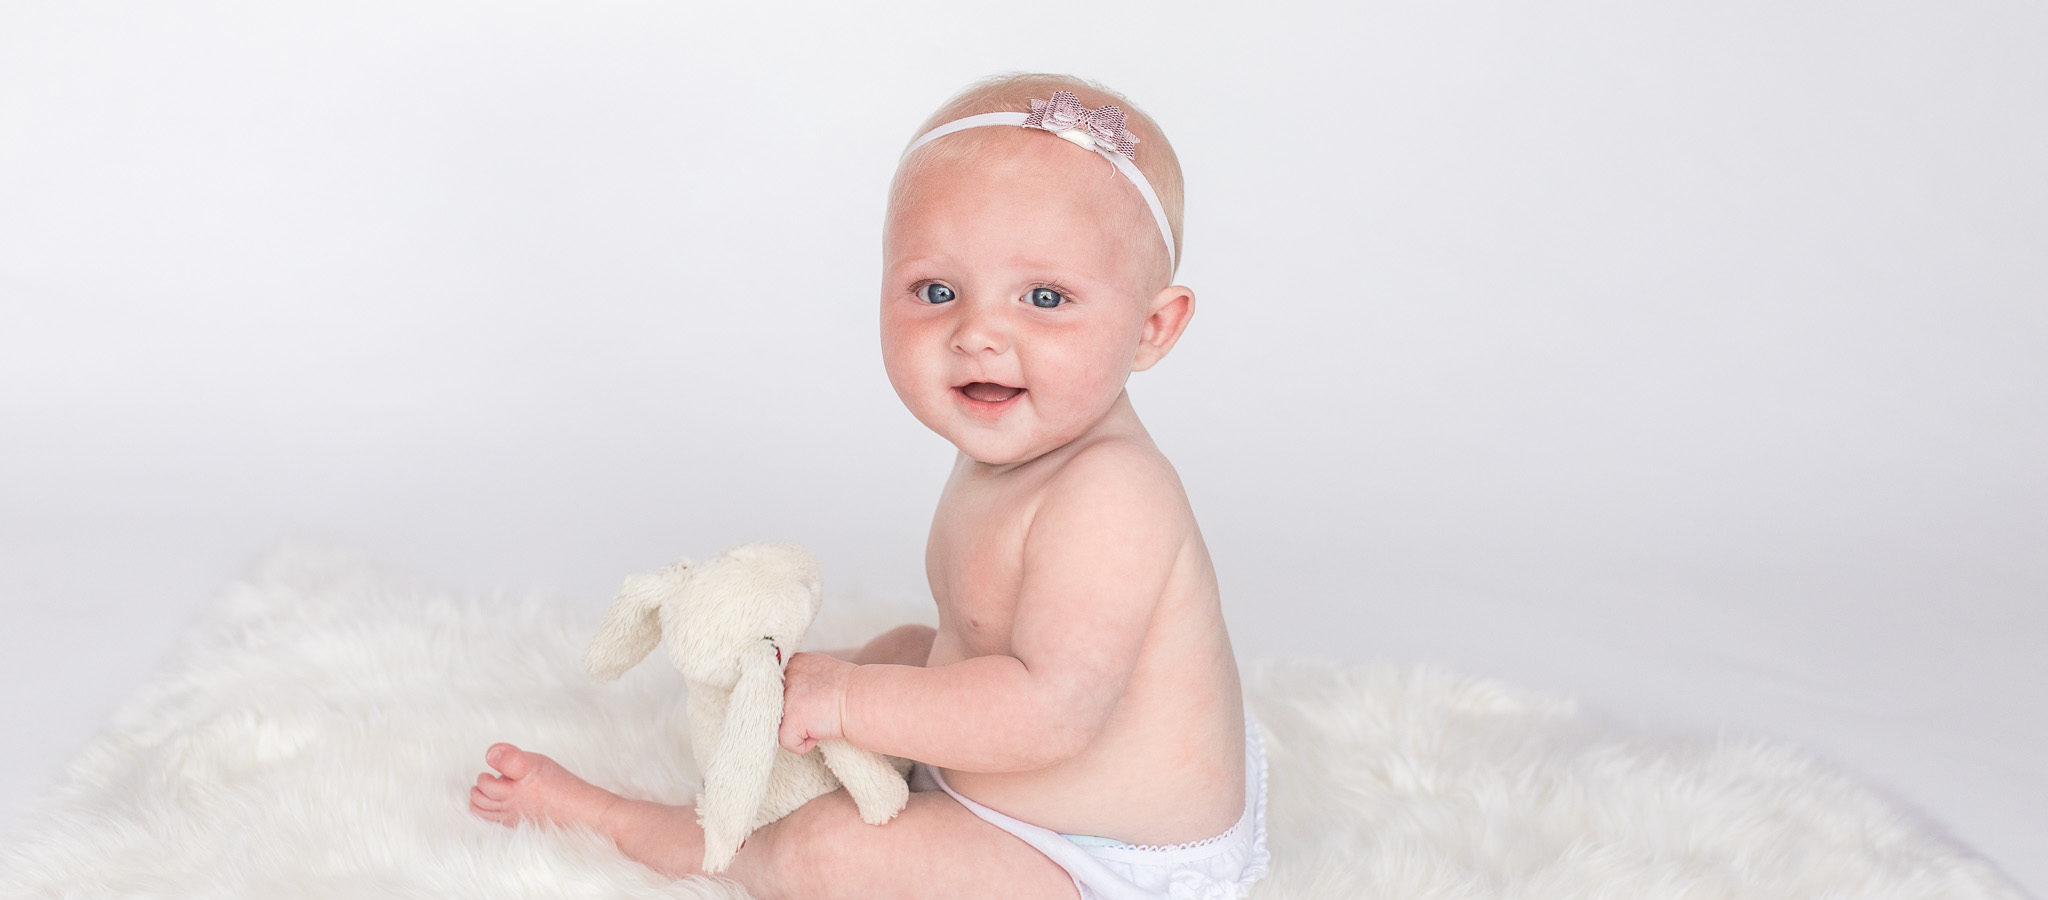 Six month old baby sitting up for photo session aberdeenshire scotland - Debbie Dee Photography